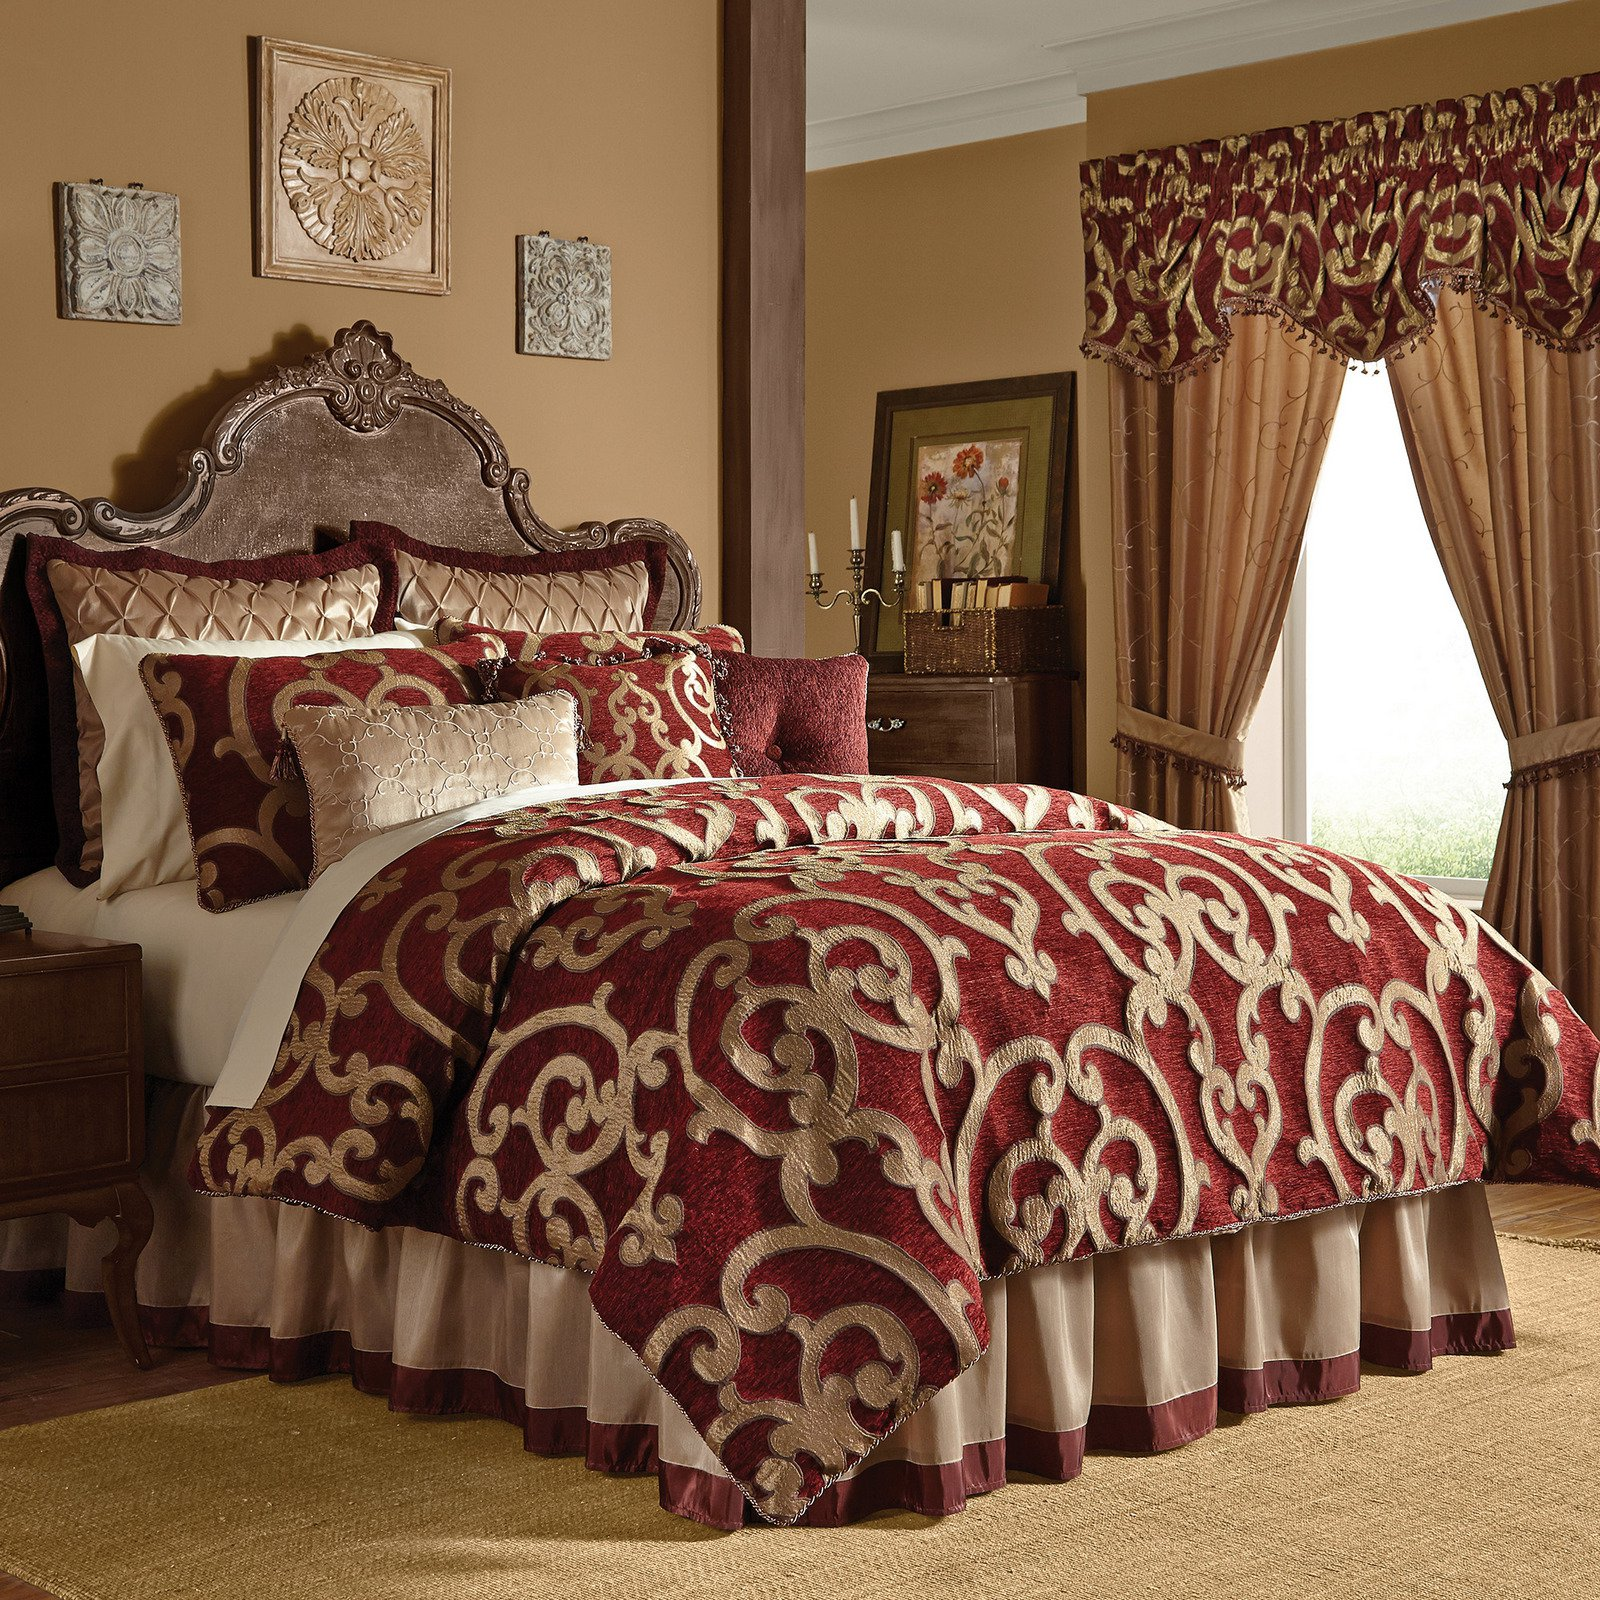 Modern Queen Bedroom Sets Red Comforter Set In King Or Queen Corsica